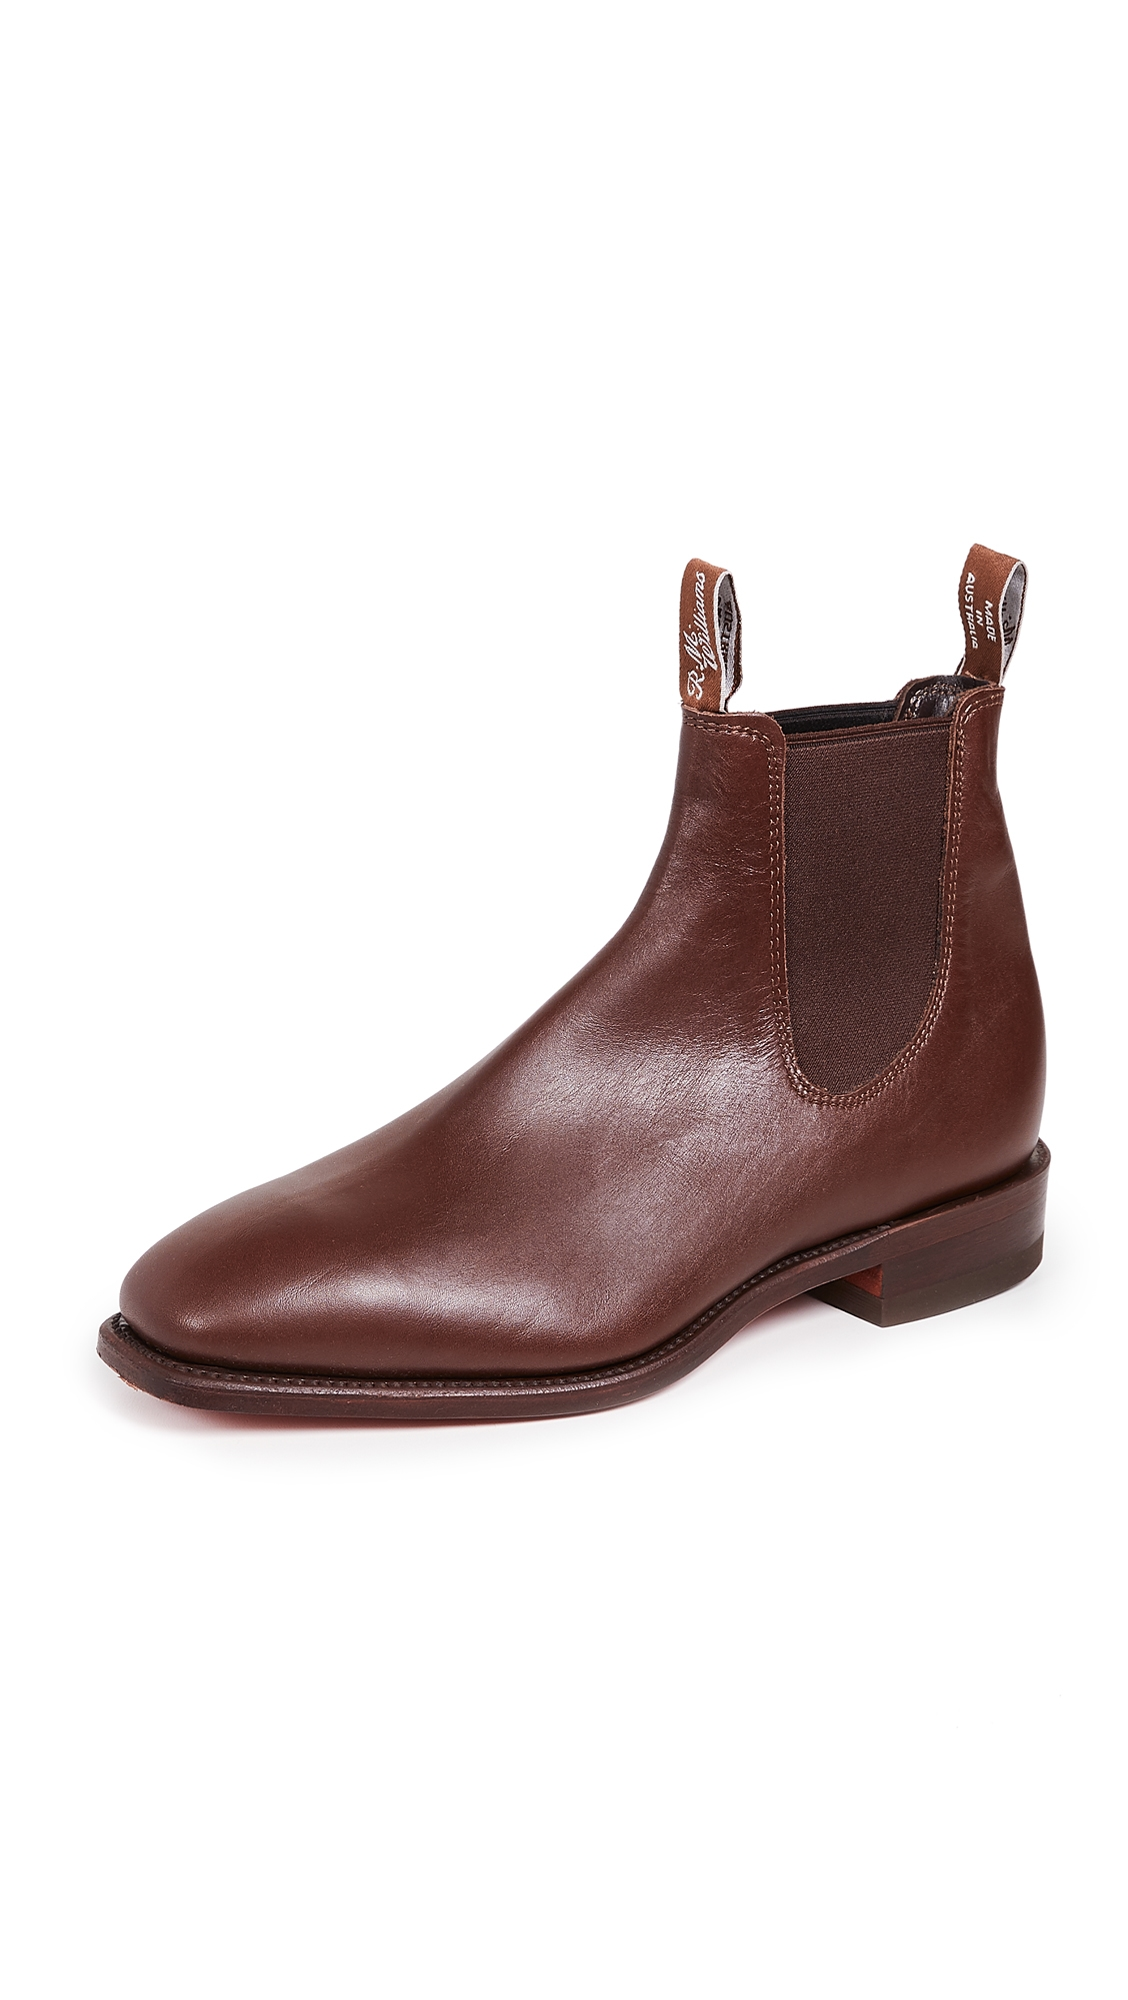 R.M.WILLIAMS CLASSIC RM BOOTS